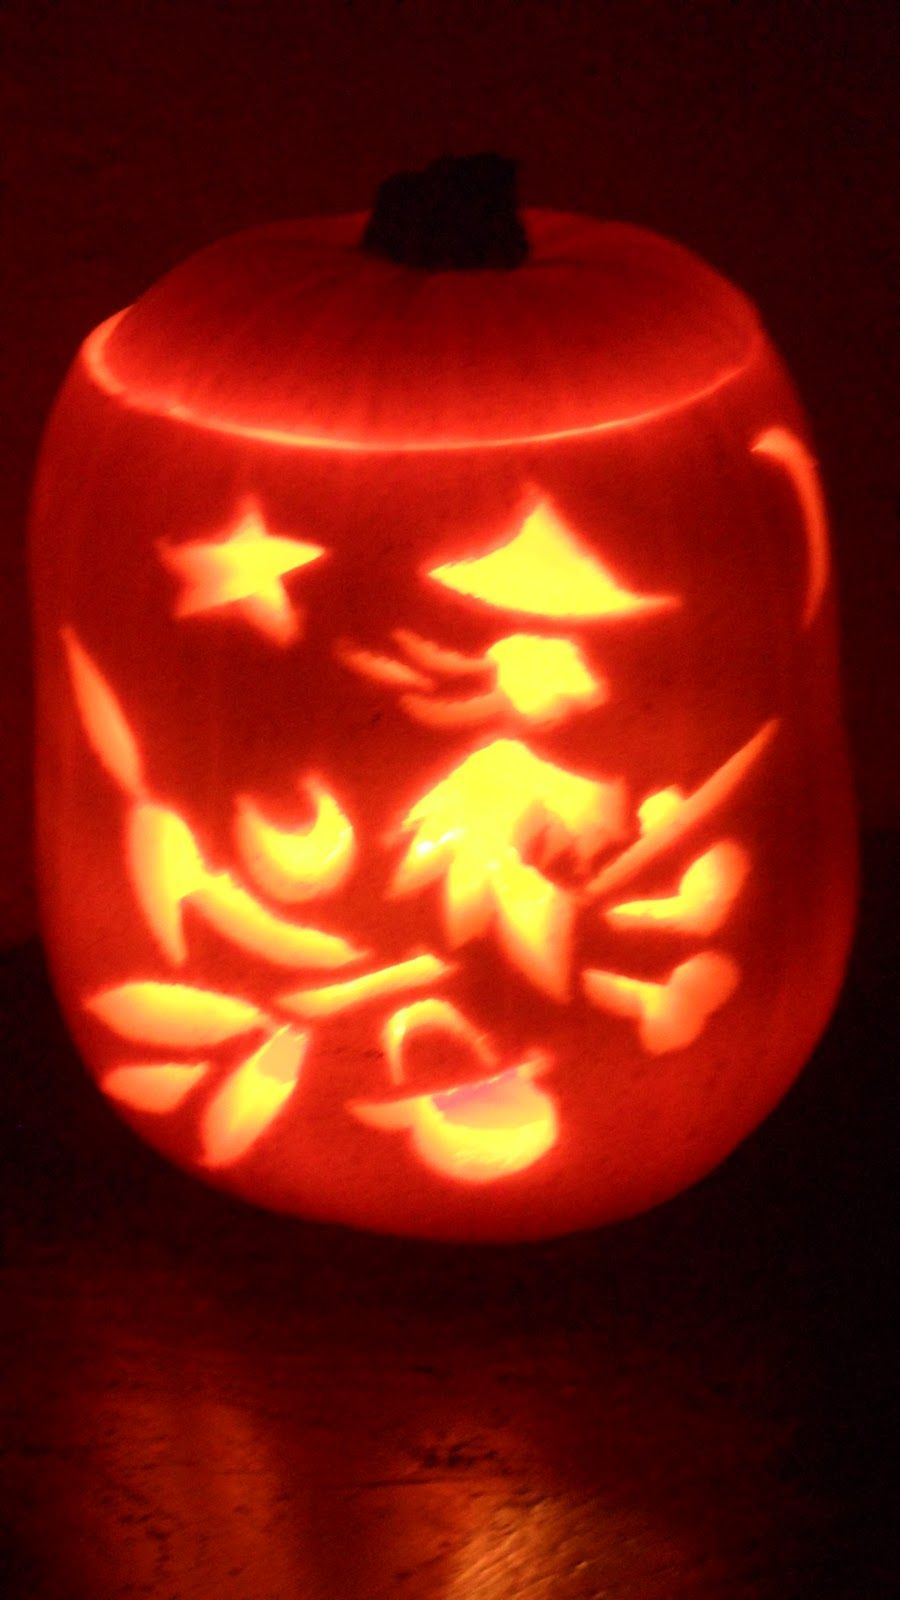 Meg And Mog Pumpkin Carved By Galina Varese Scary Halloween Carving